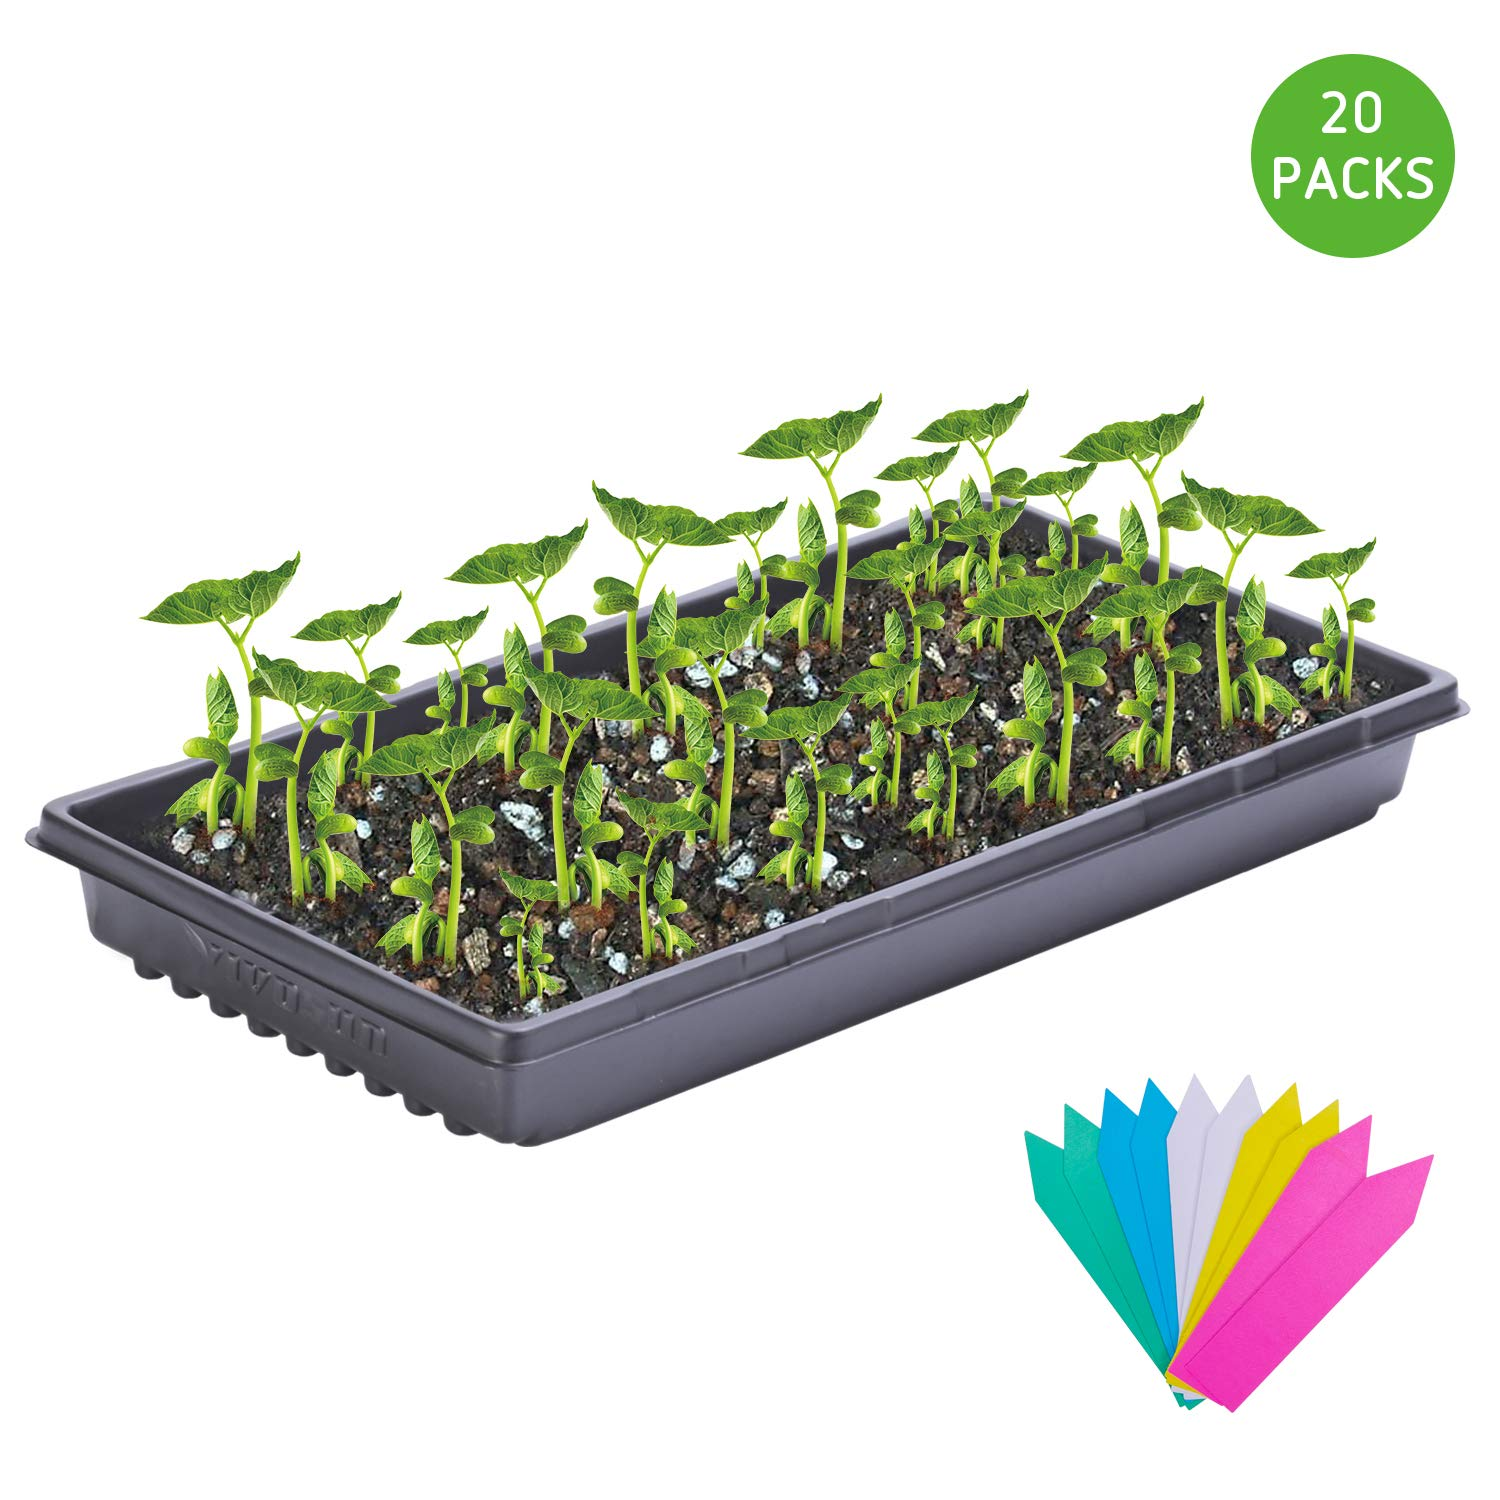 VIVOSUN 10x20 Inches Plant Growing Tray No Drain Holes Heavy Duty for Seed Starter, Plant Propagation Hydroponic Growing Pack of 20 by VIVOSUN